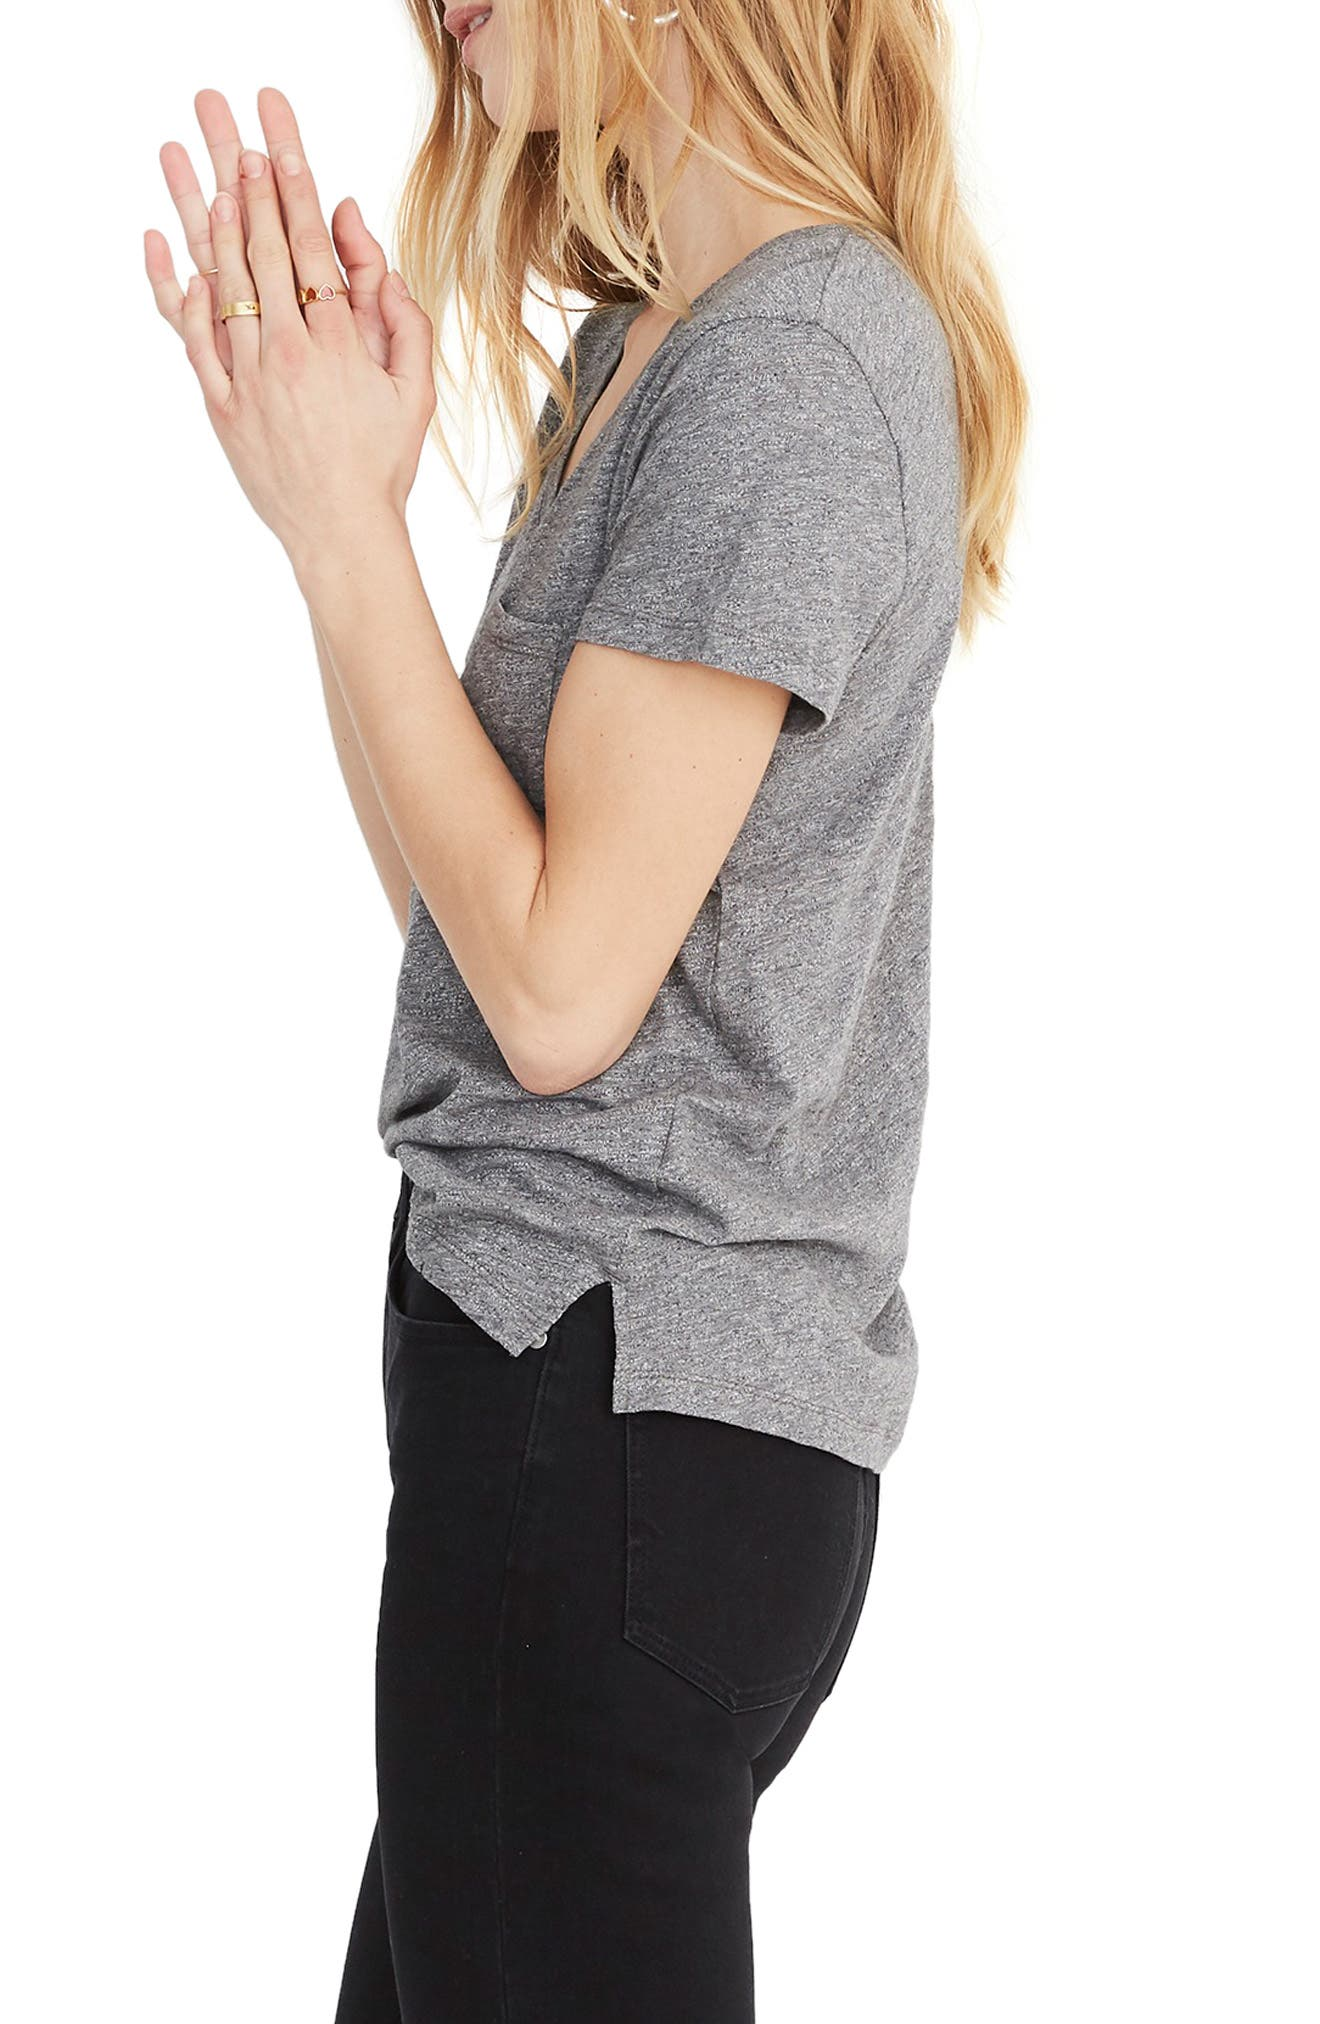 MADEWELL, Whisper Cotton V-Neck Pocket Tee, Alternate thumbnail 4, color, HEATHER MERCURY